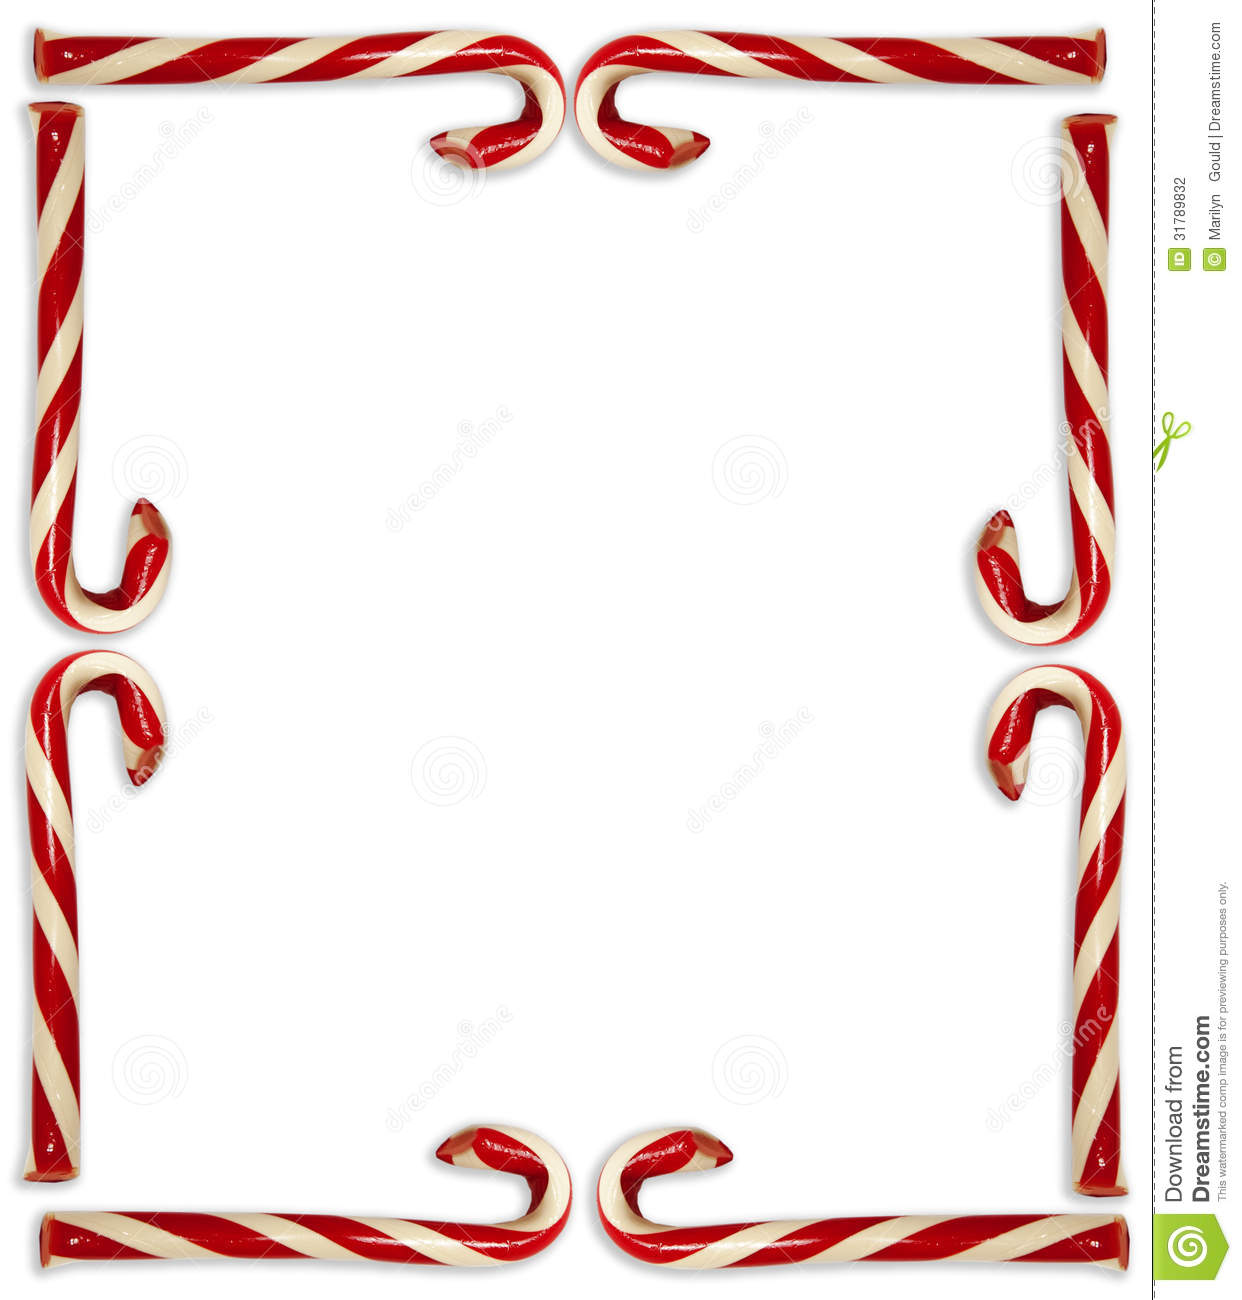 hight resolution of candy cane border